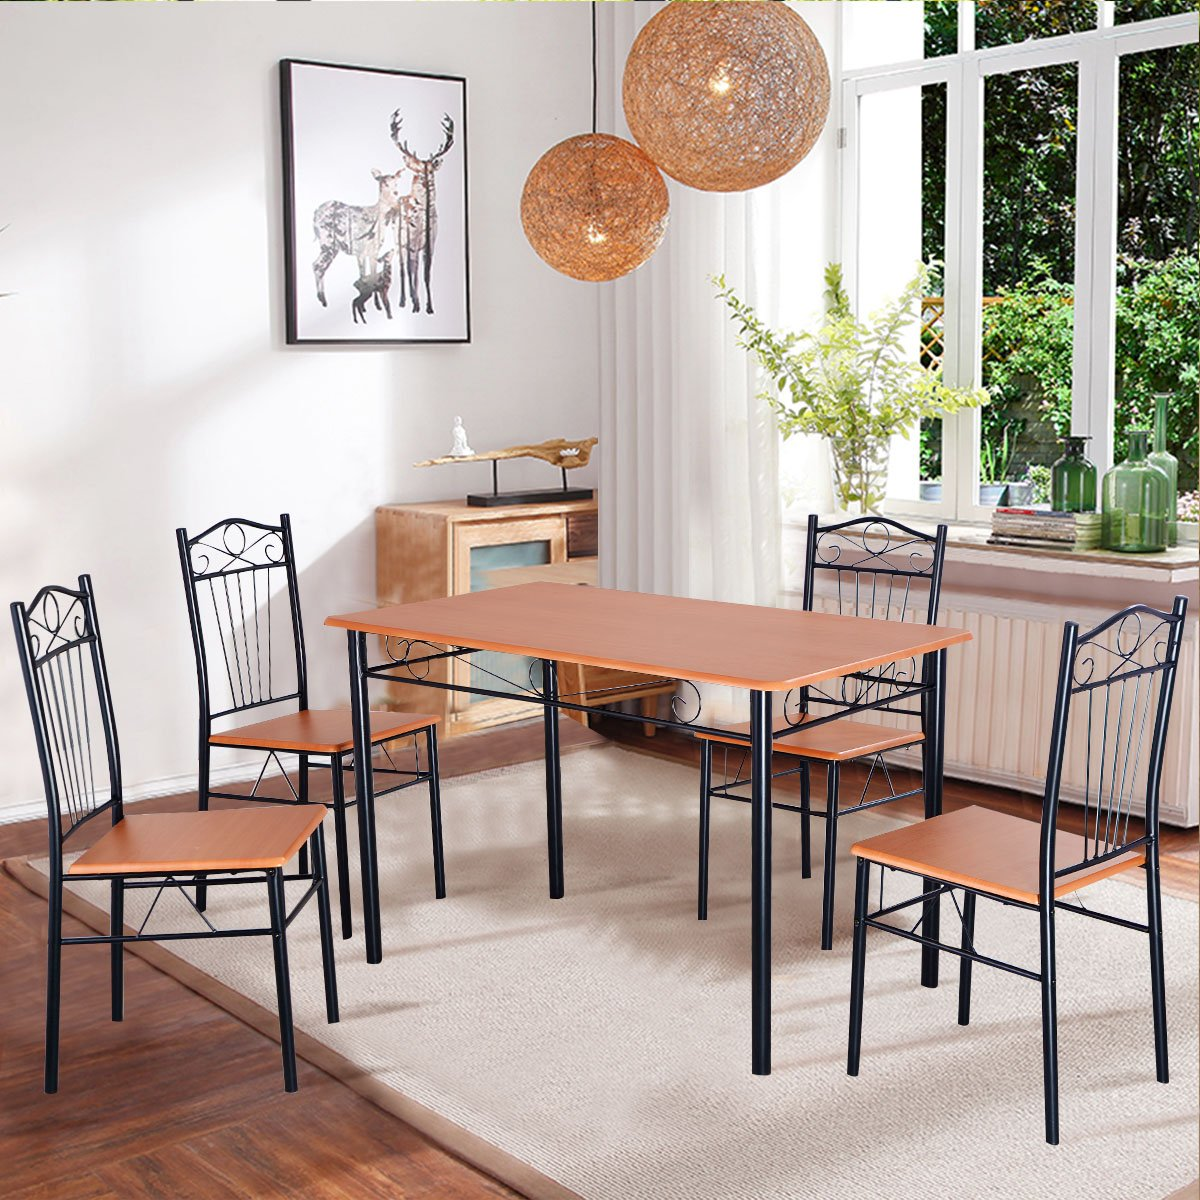 Amazon.com Tangkula Steel Frame Dining Set Table and Chairs Kitchen Modern Furniture Bistro Wood Home u0026 Kitchen & Amazon.com: Tangkula Steel Frame Dining Set Table and Chairs Kitchen ...